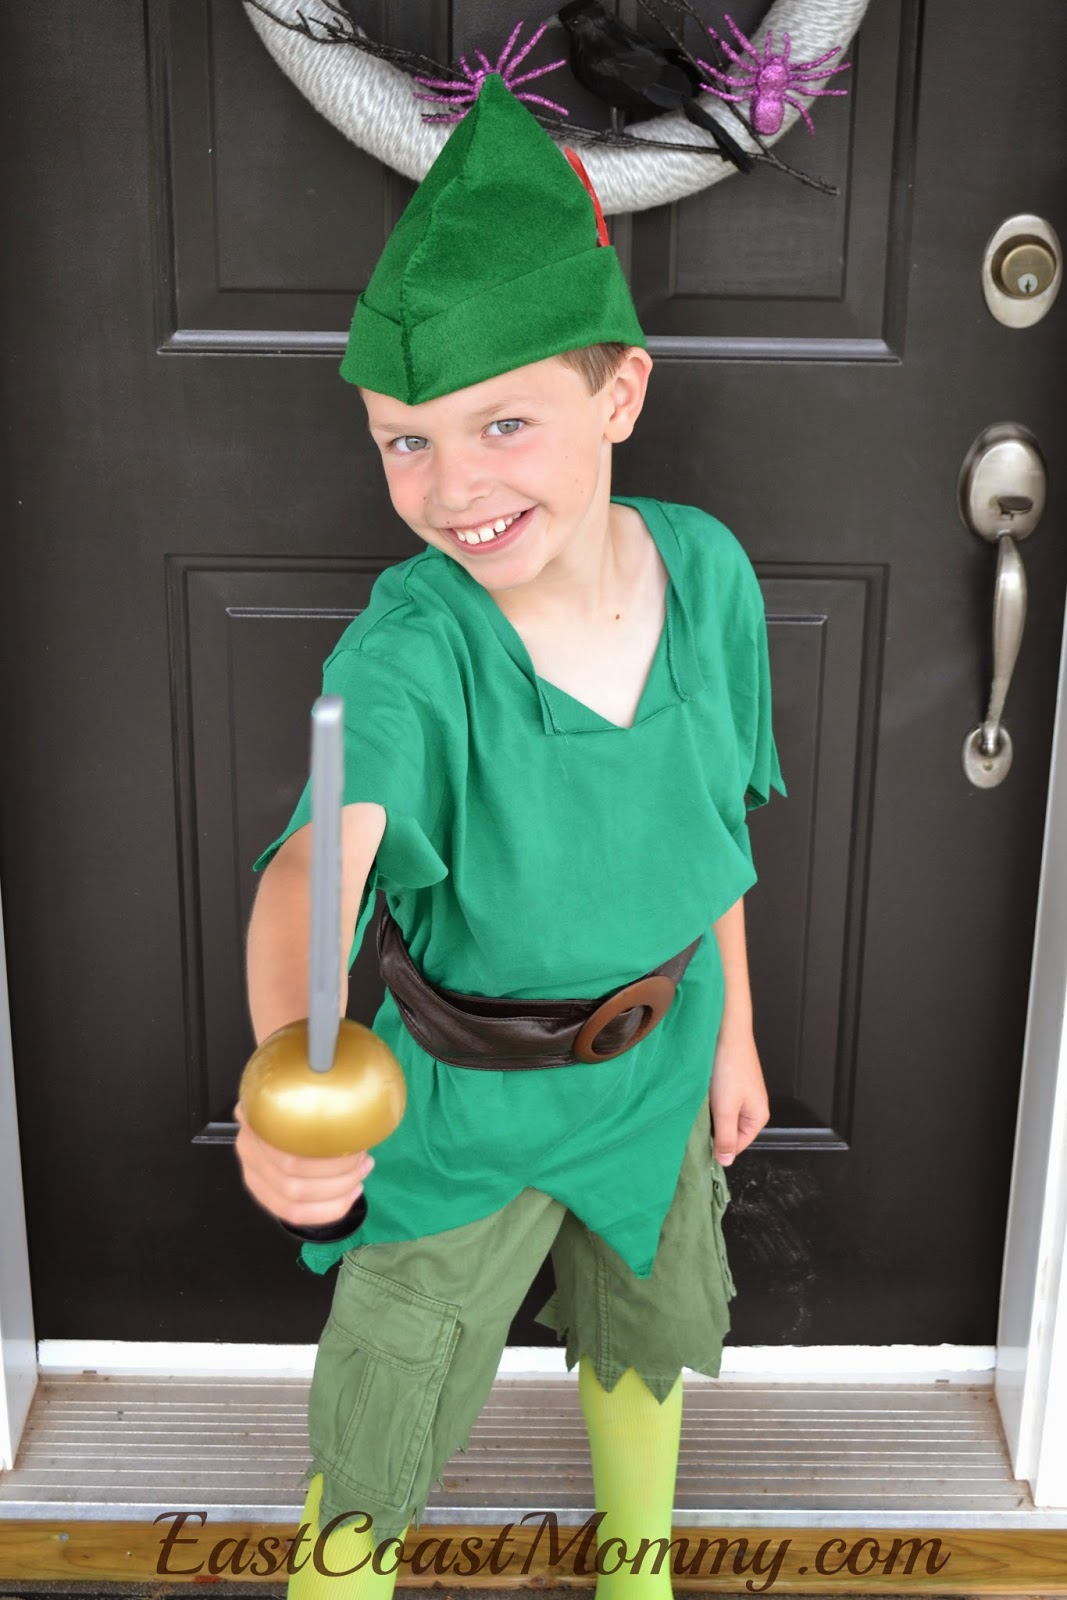 east coast mommy diy peter pan costume. Black Bedroom Furniture Sets. Home Design Ideas